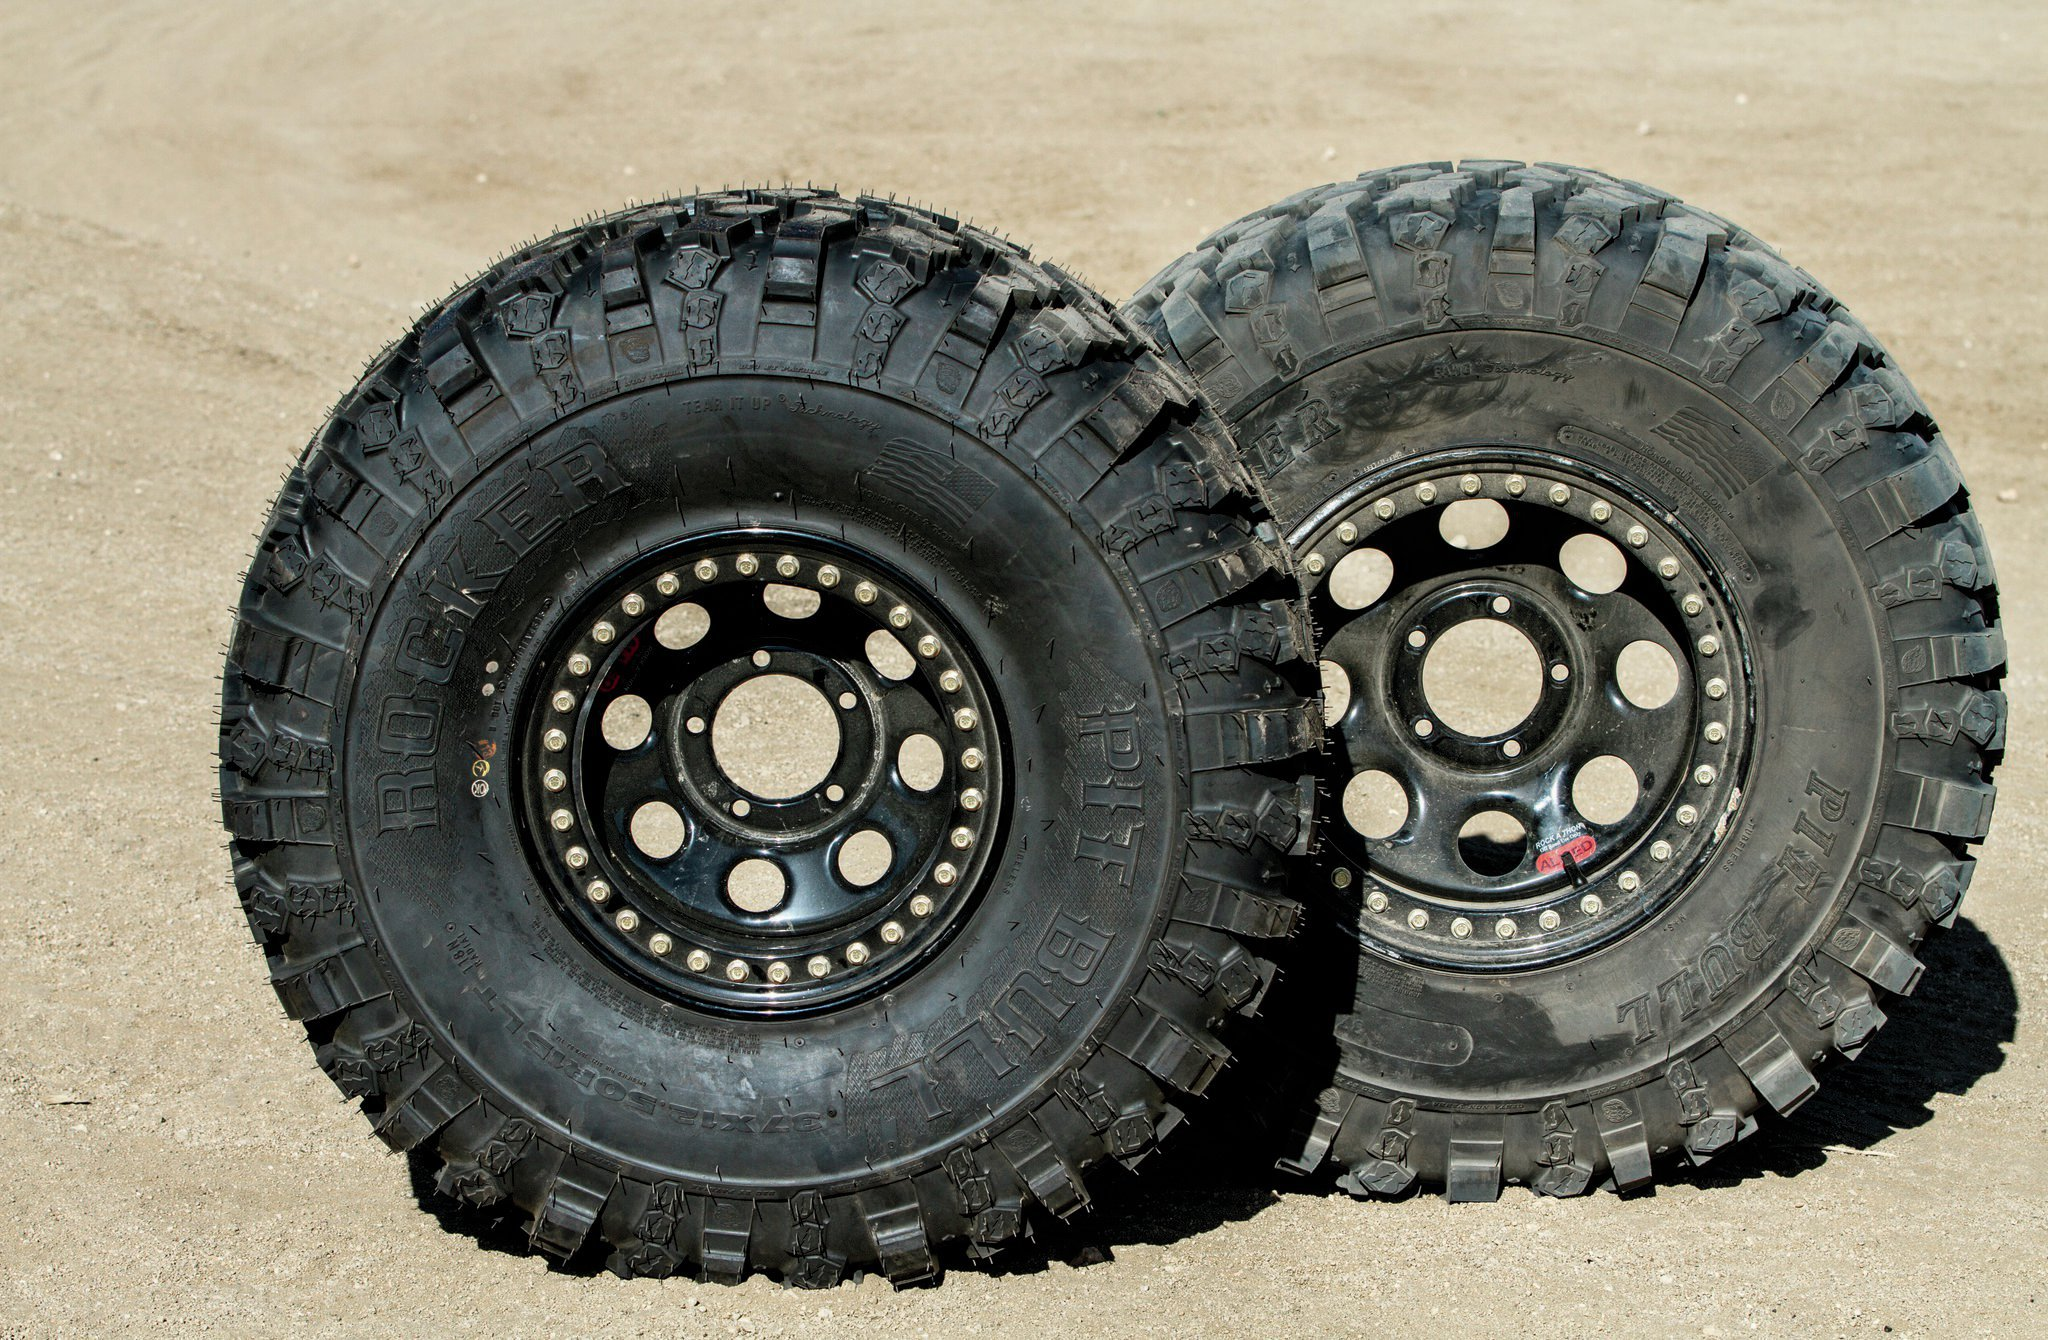 Like these Allied beadlock wheels, steel wheels are typically available in 15, 16, and 17-inch sizes. Aluminum wheels are available in a greater variety of diameters. Larger wheels allow for fitment of bigger brakes, and 17-inch wheels currently have the most tire options available.